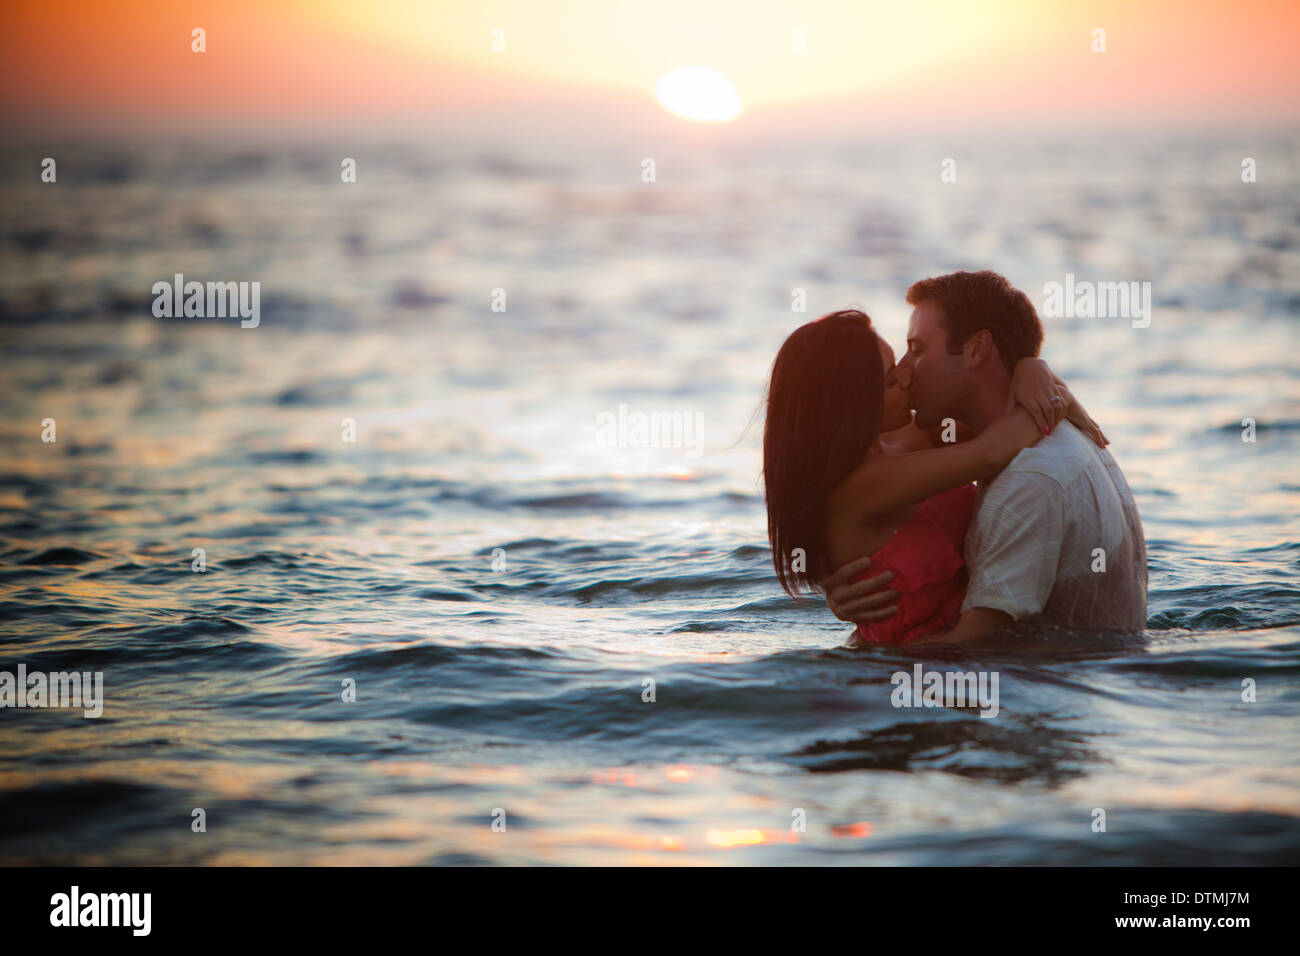 couple kiss and hug in the ocean beach sea during sunset stock photo